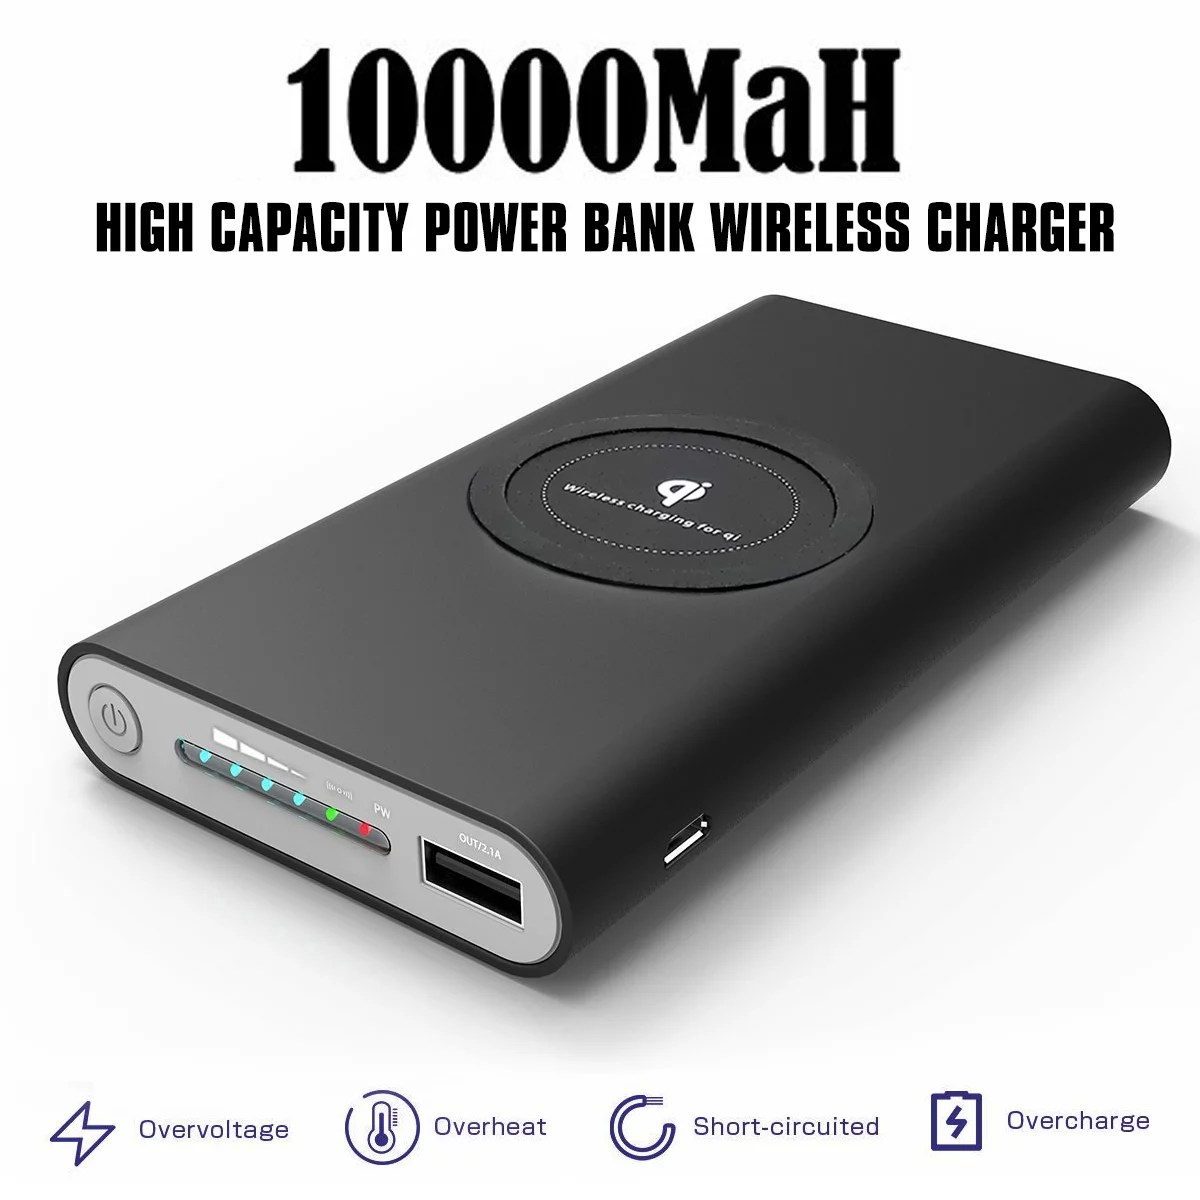 Wireless Battery Charger Qi Wireless Charger Qualcomm Qc3 Power Bank 10000mah Wireless Power Bank 3 Port Portable Charger External Battery Pack With Usb C In Out For